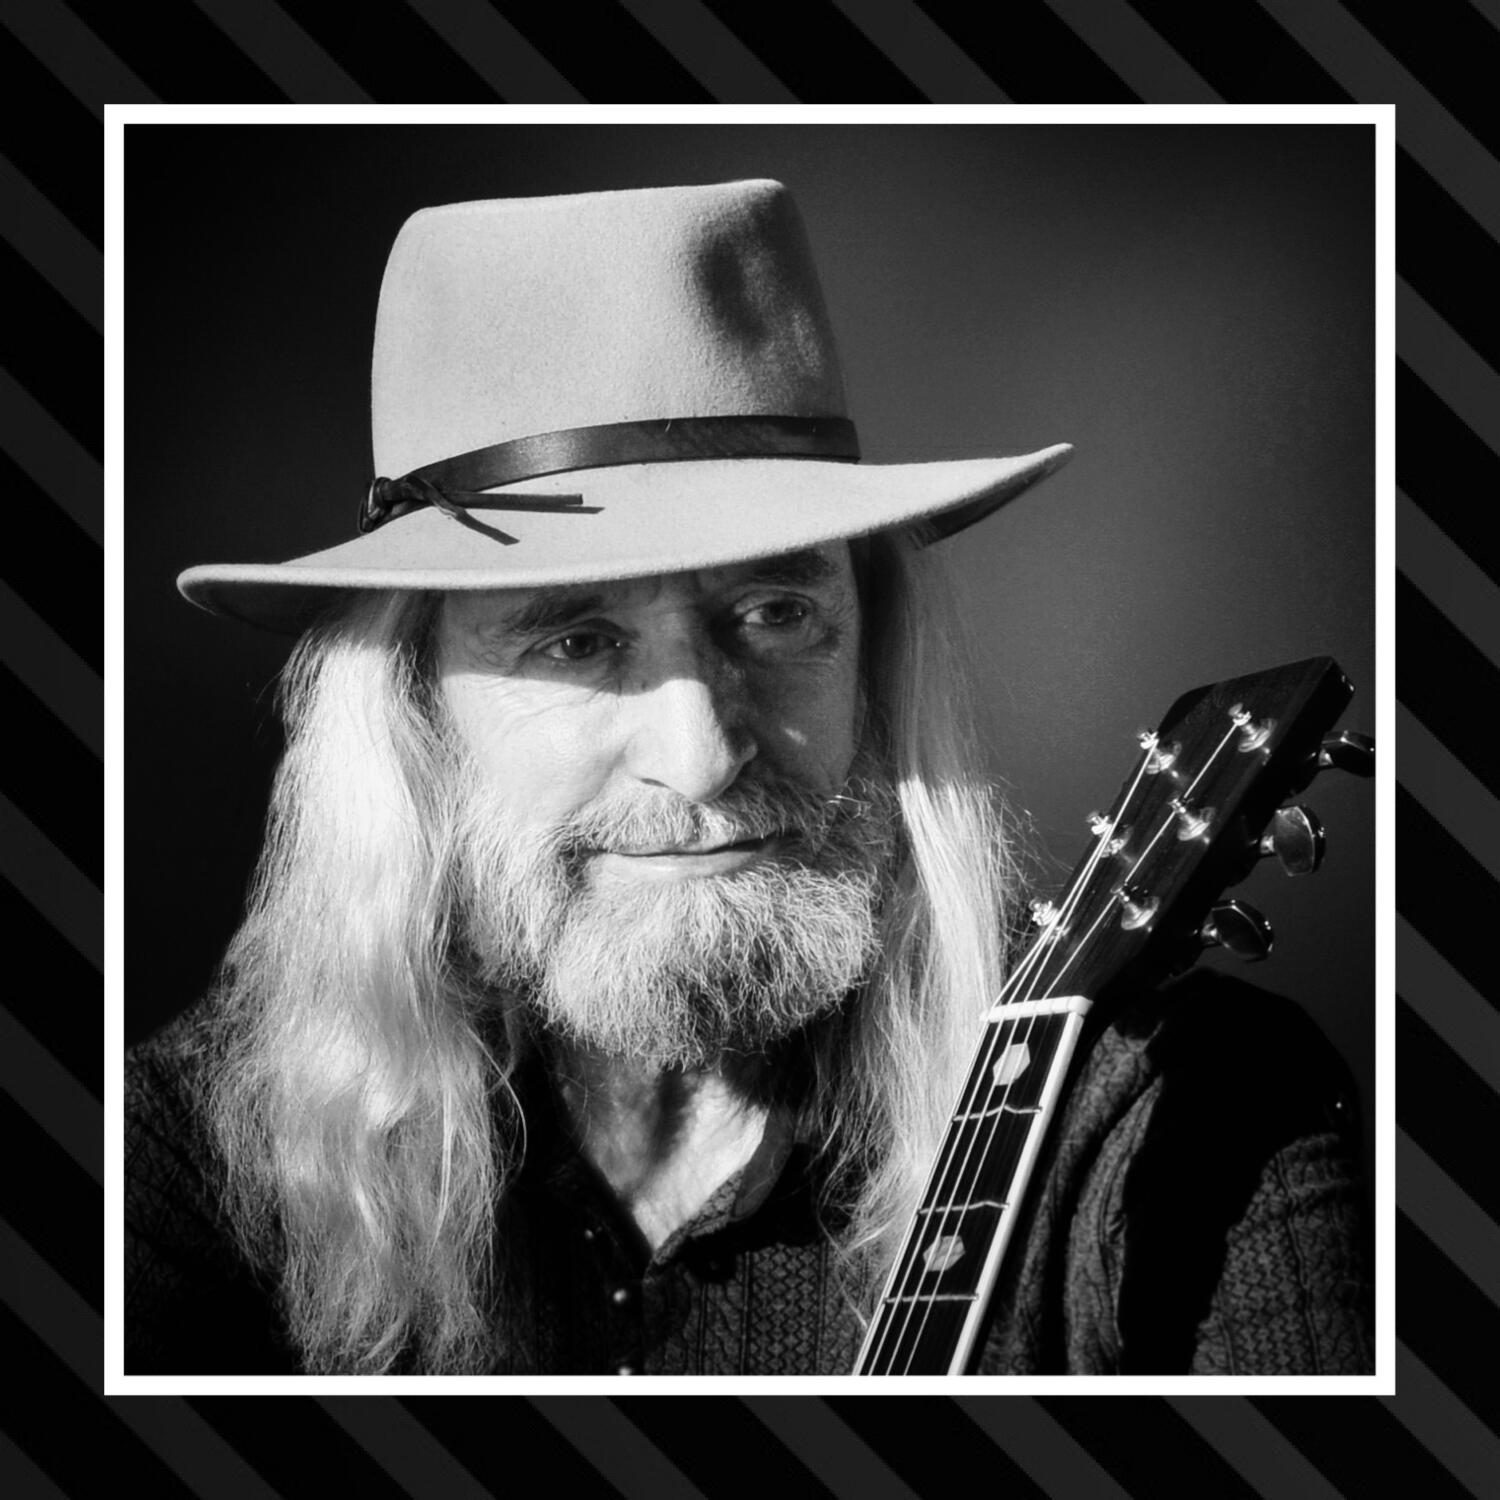 41: The one with Charlie Landsborough